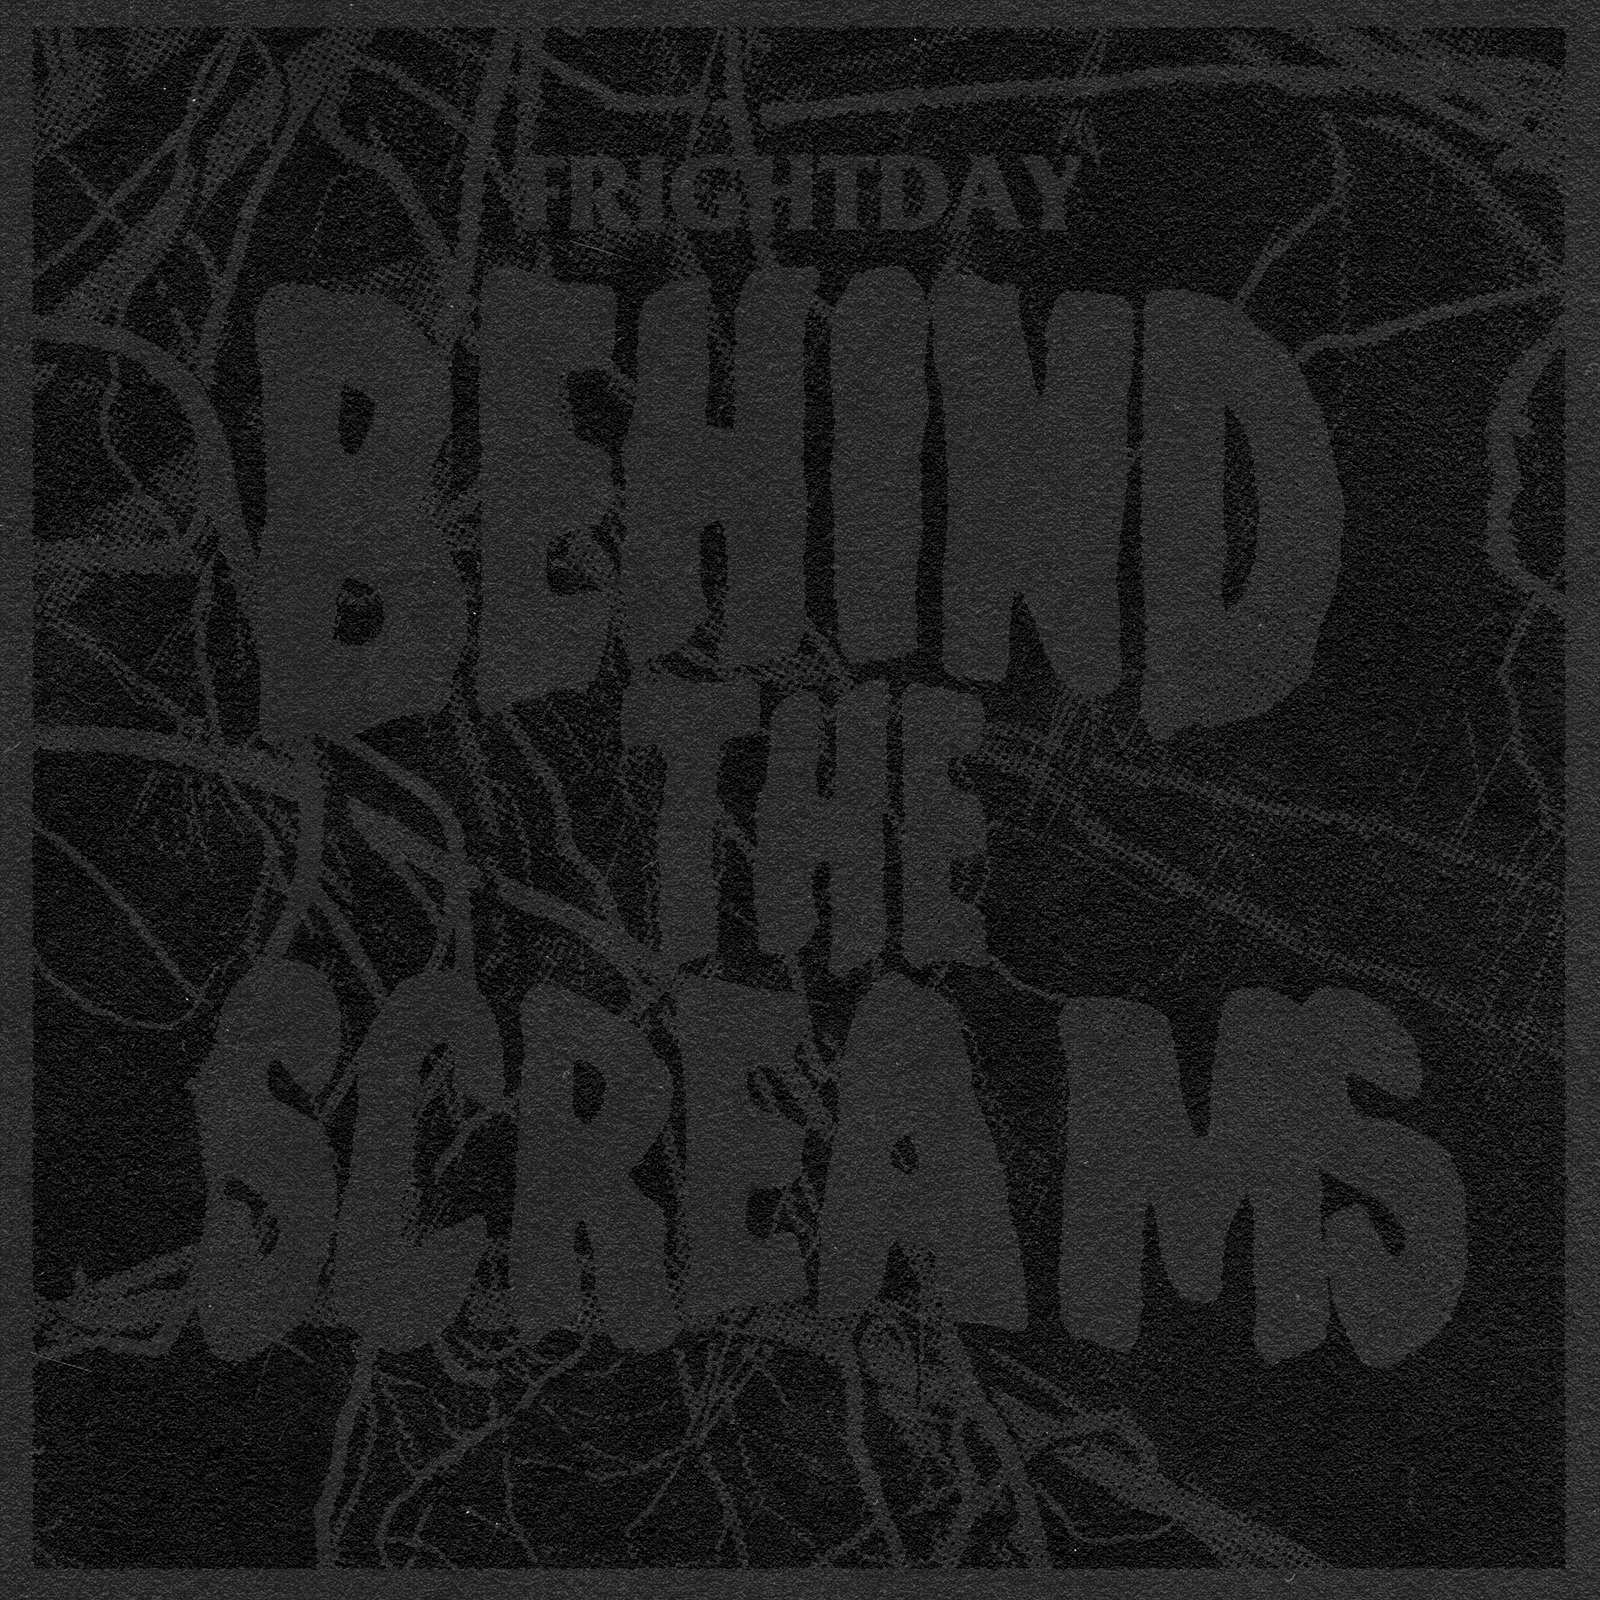 Behind the Screams: Guilty Pleasures (Excerpt)